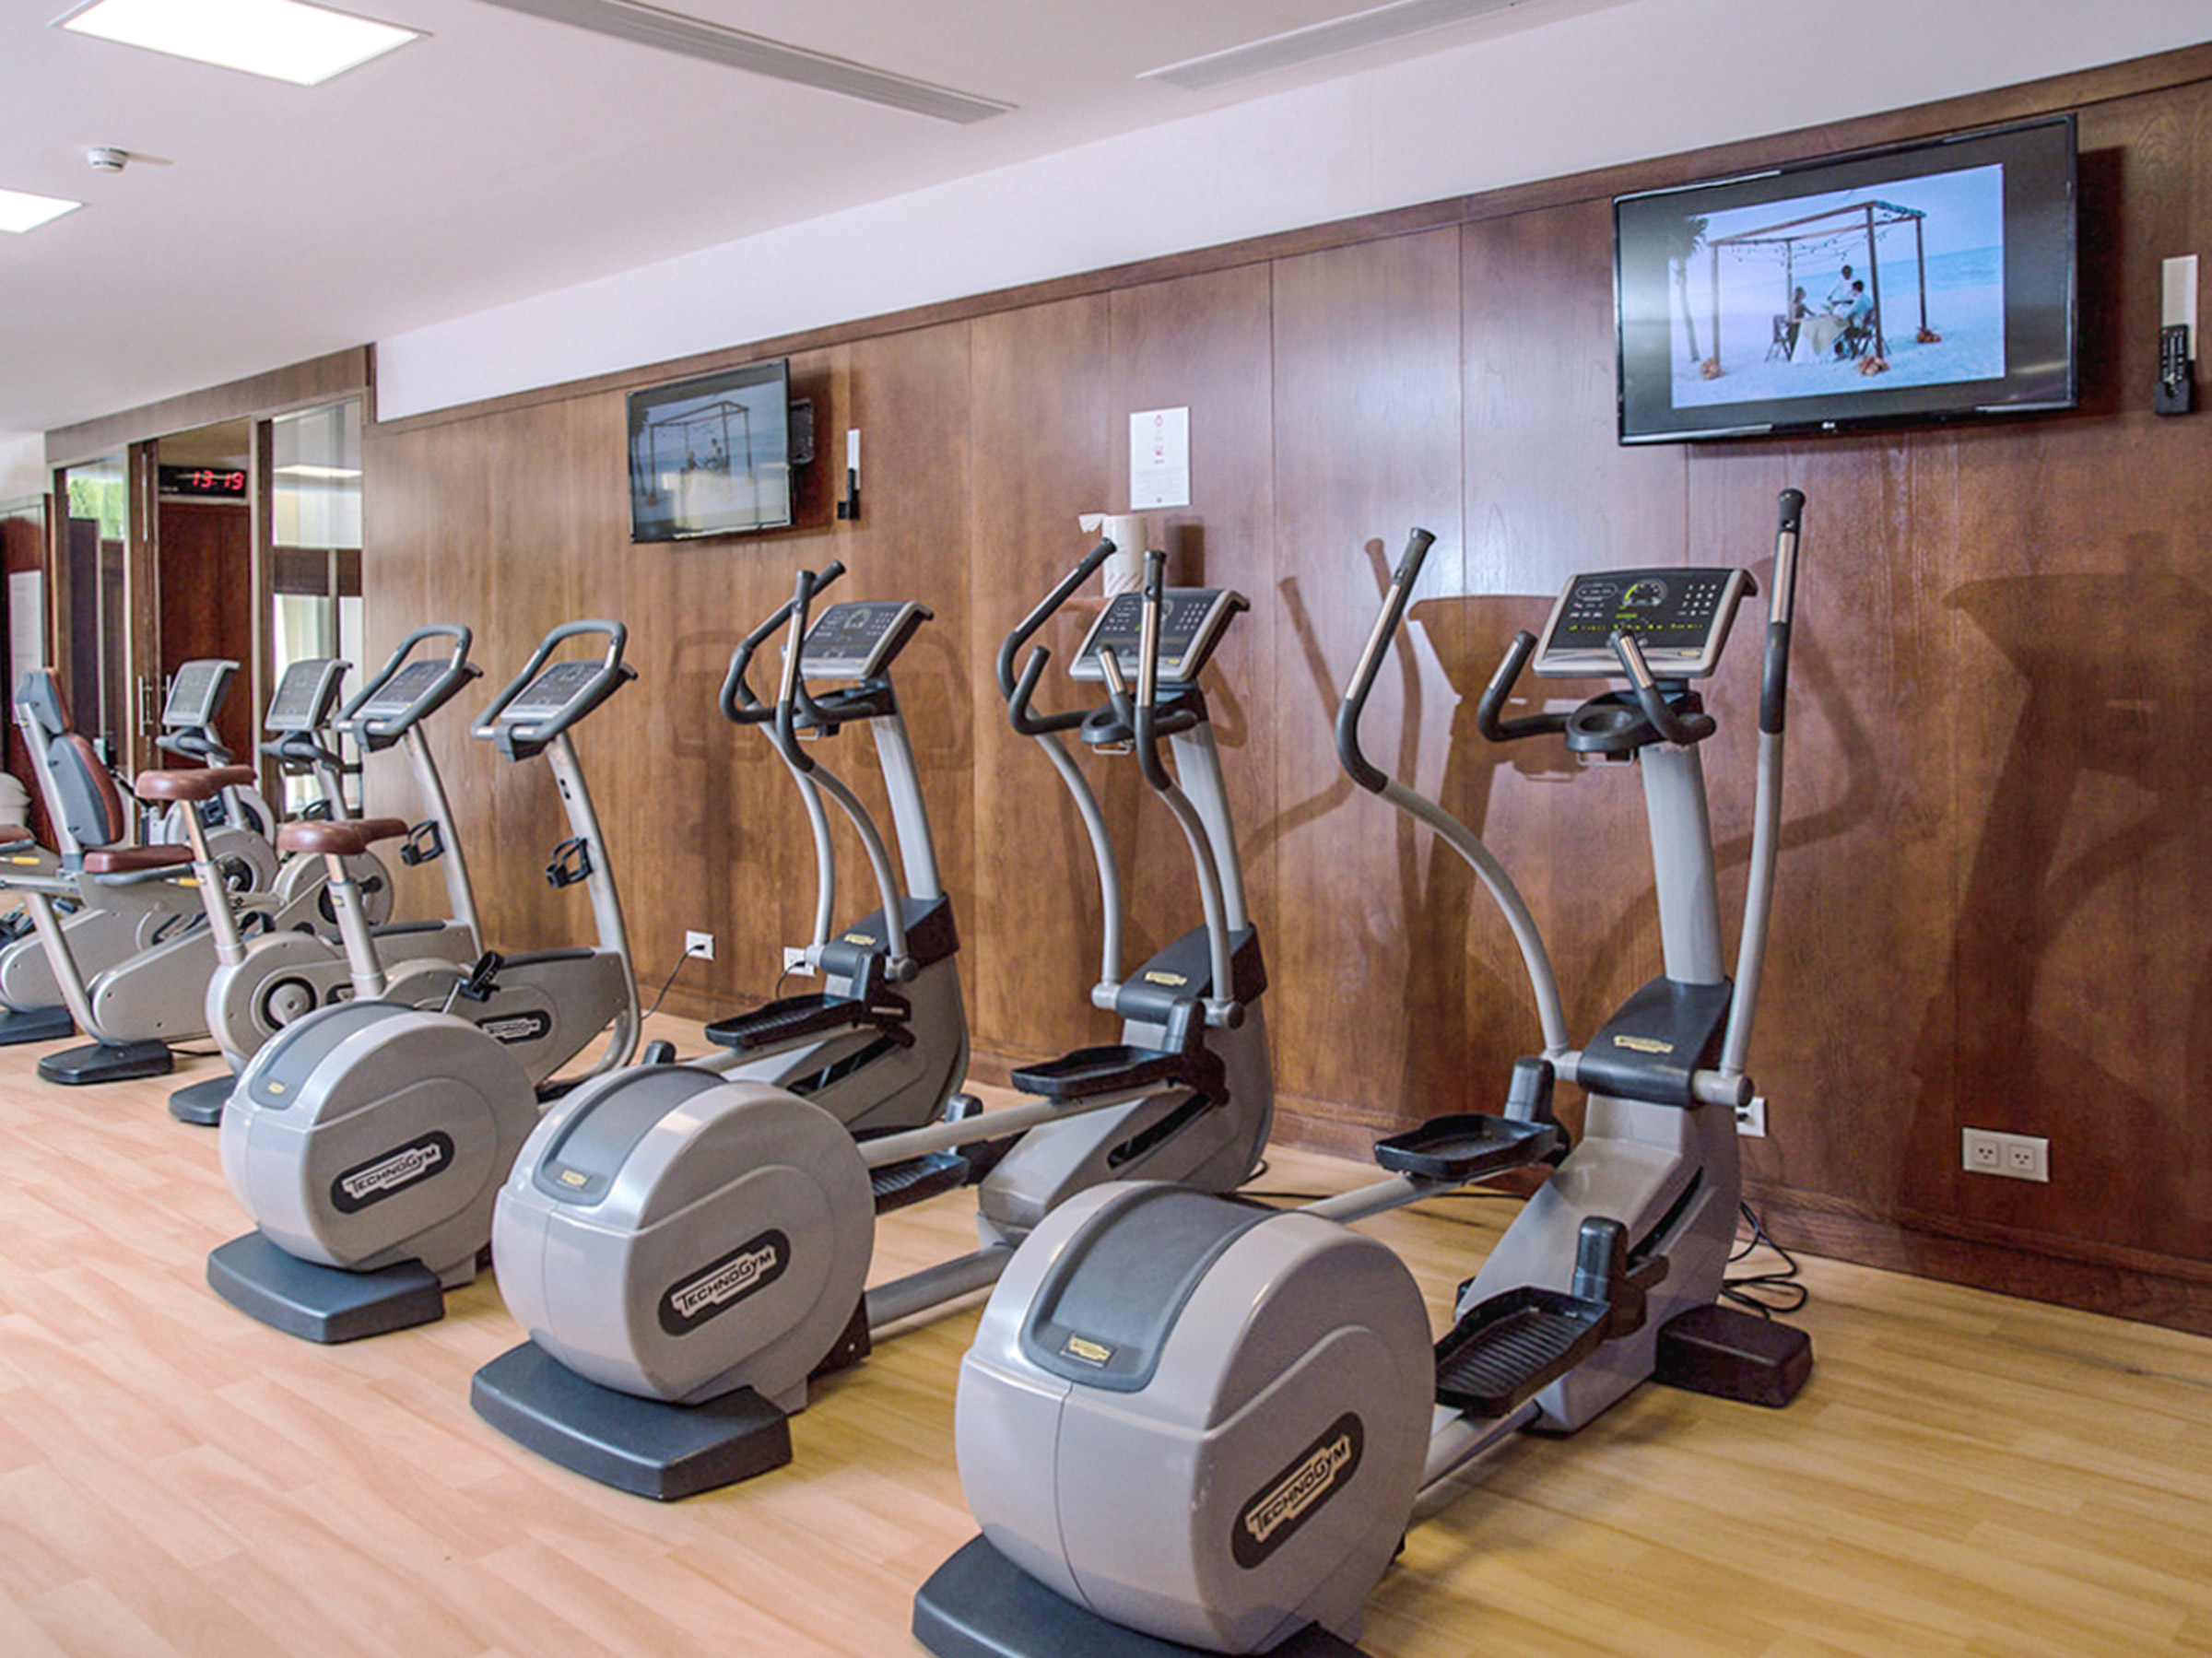 Gym in a Cancun Resort